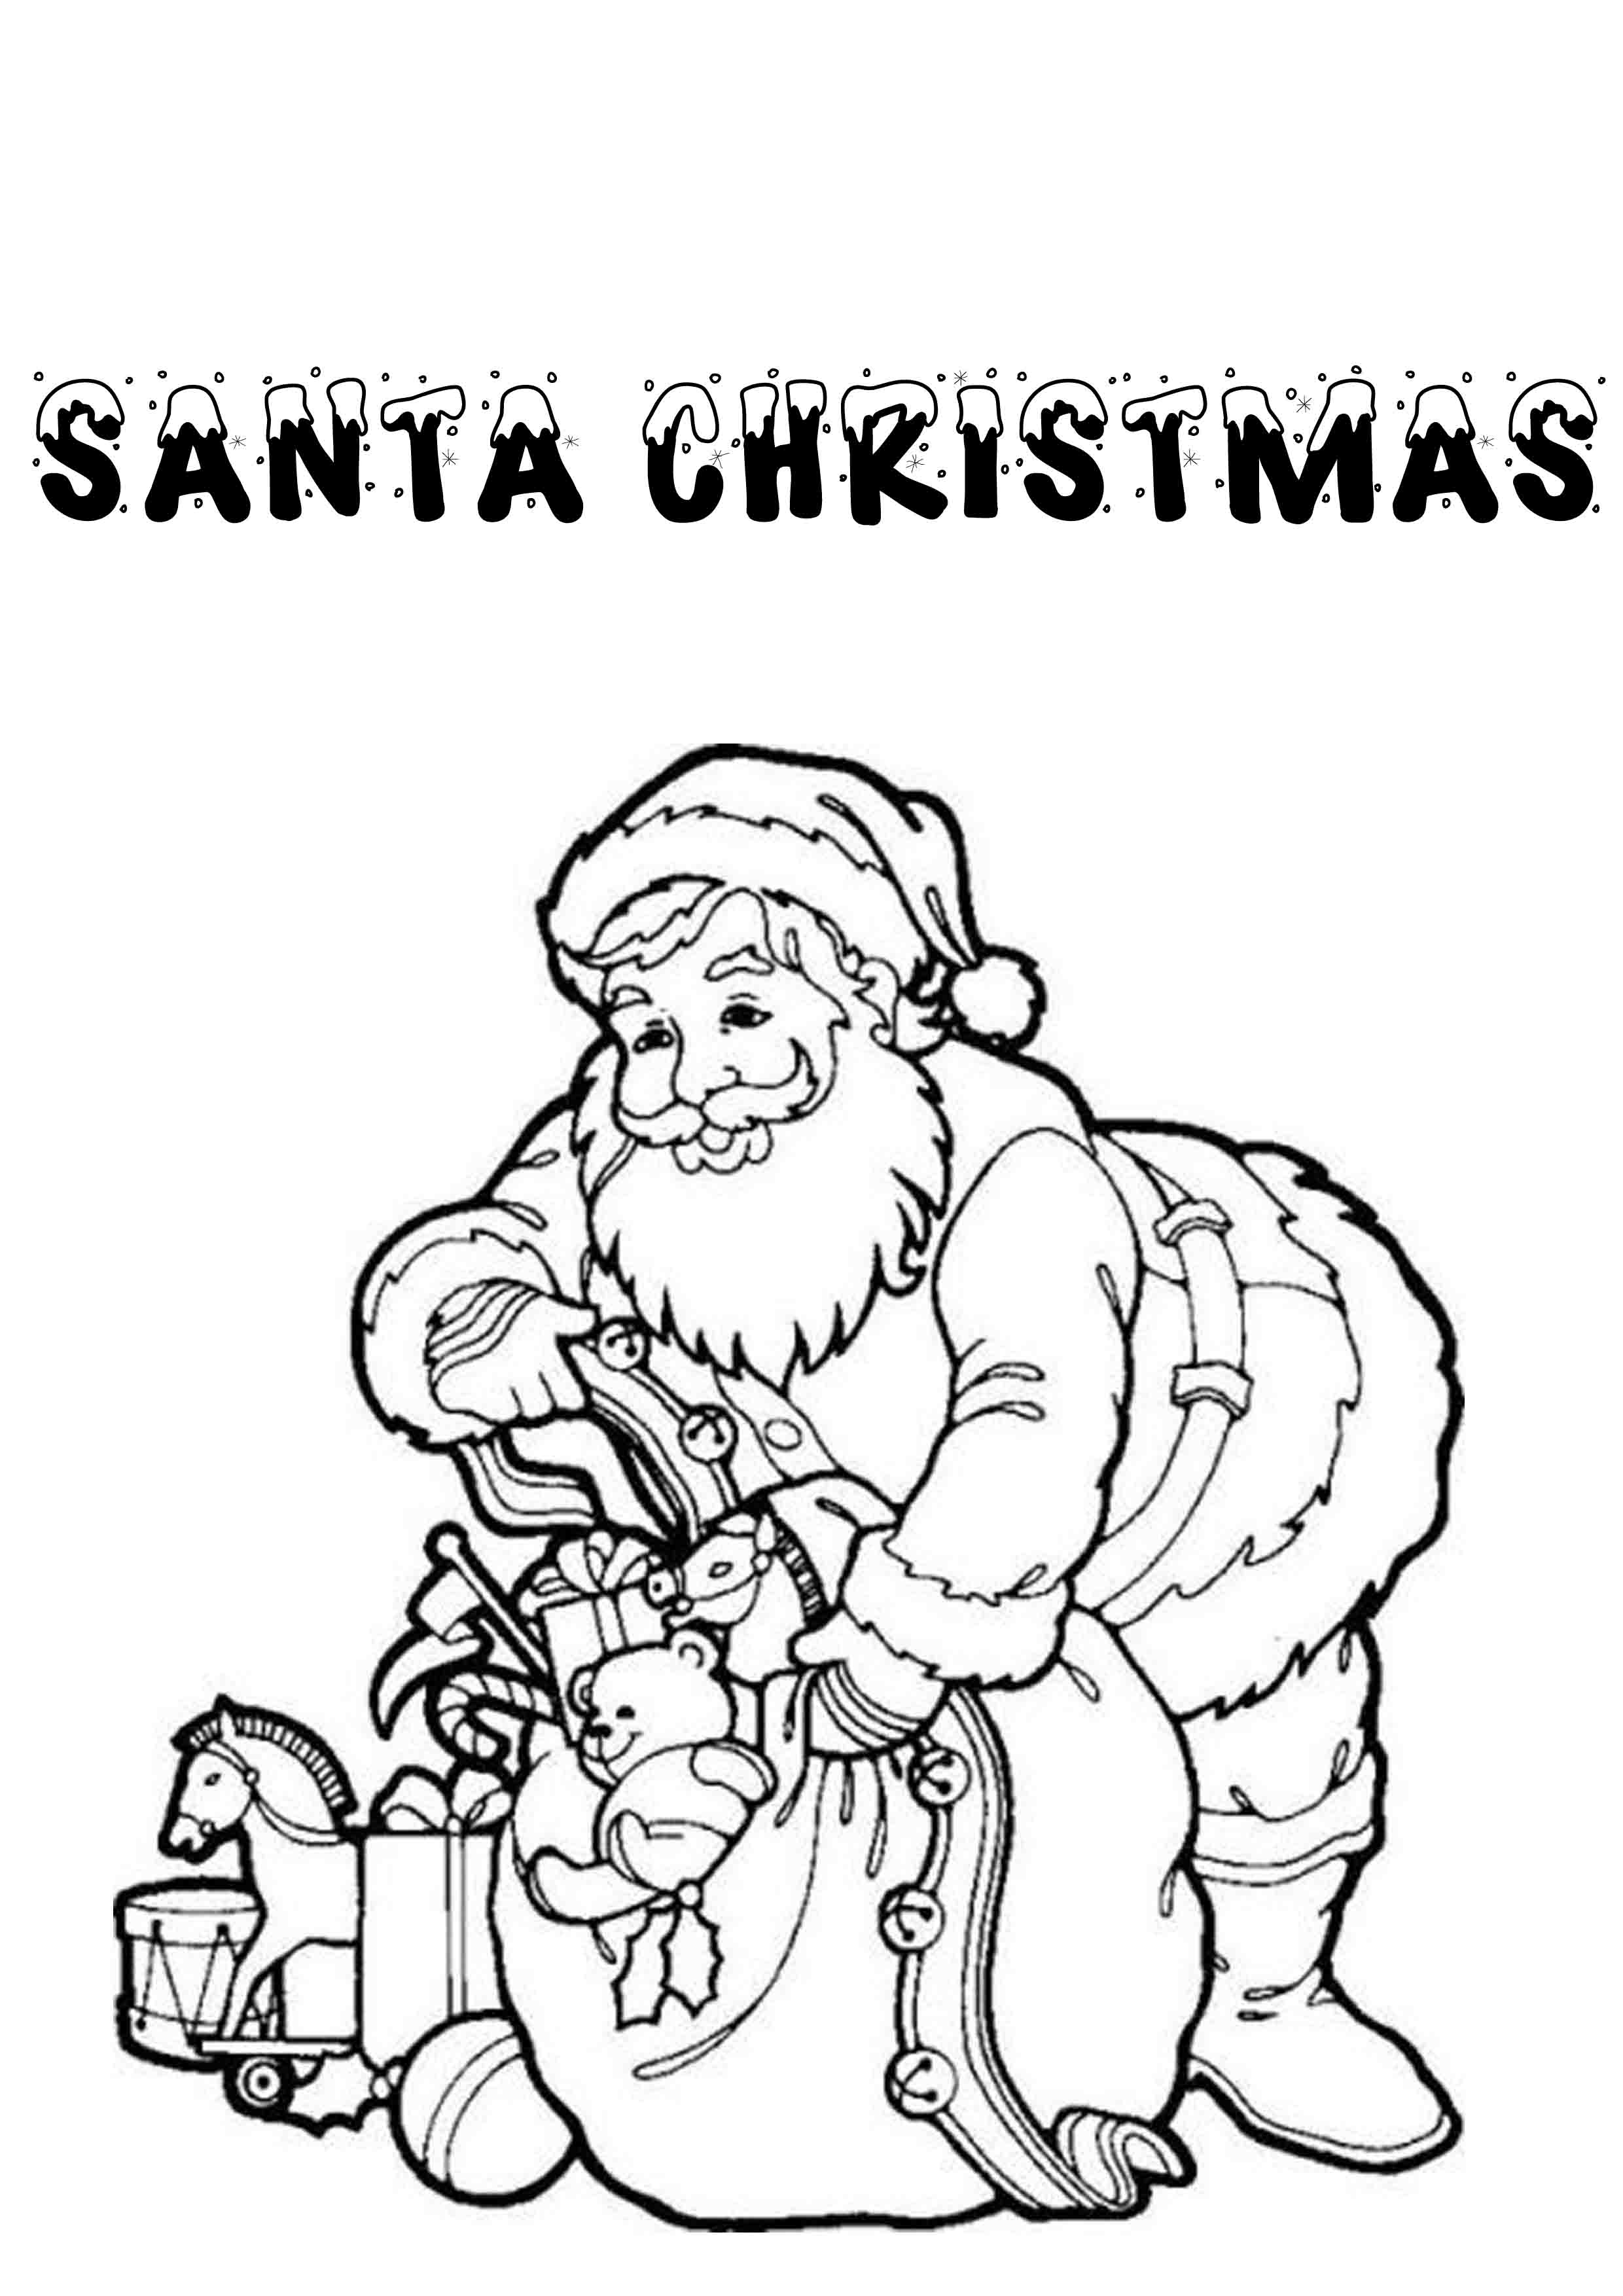 Printable Christmas Coloring Pages With Print Download For Kids